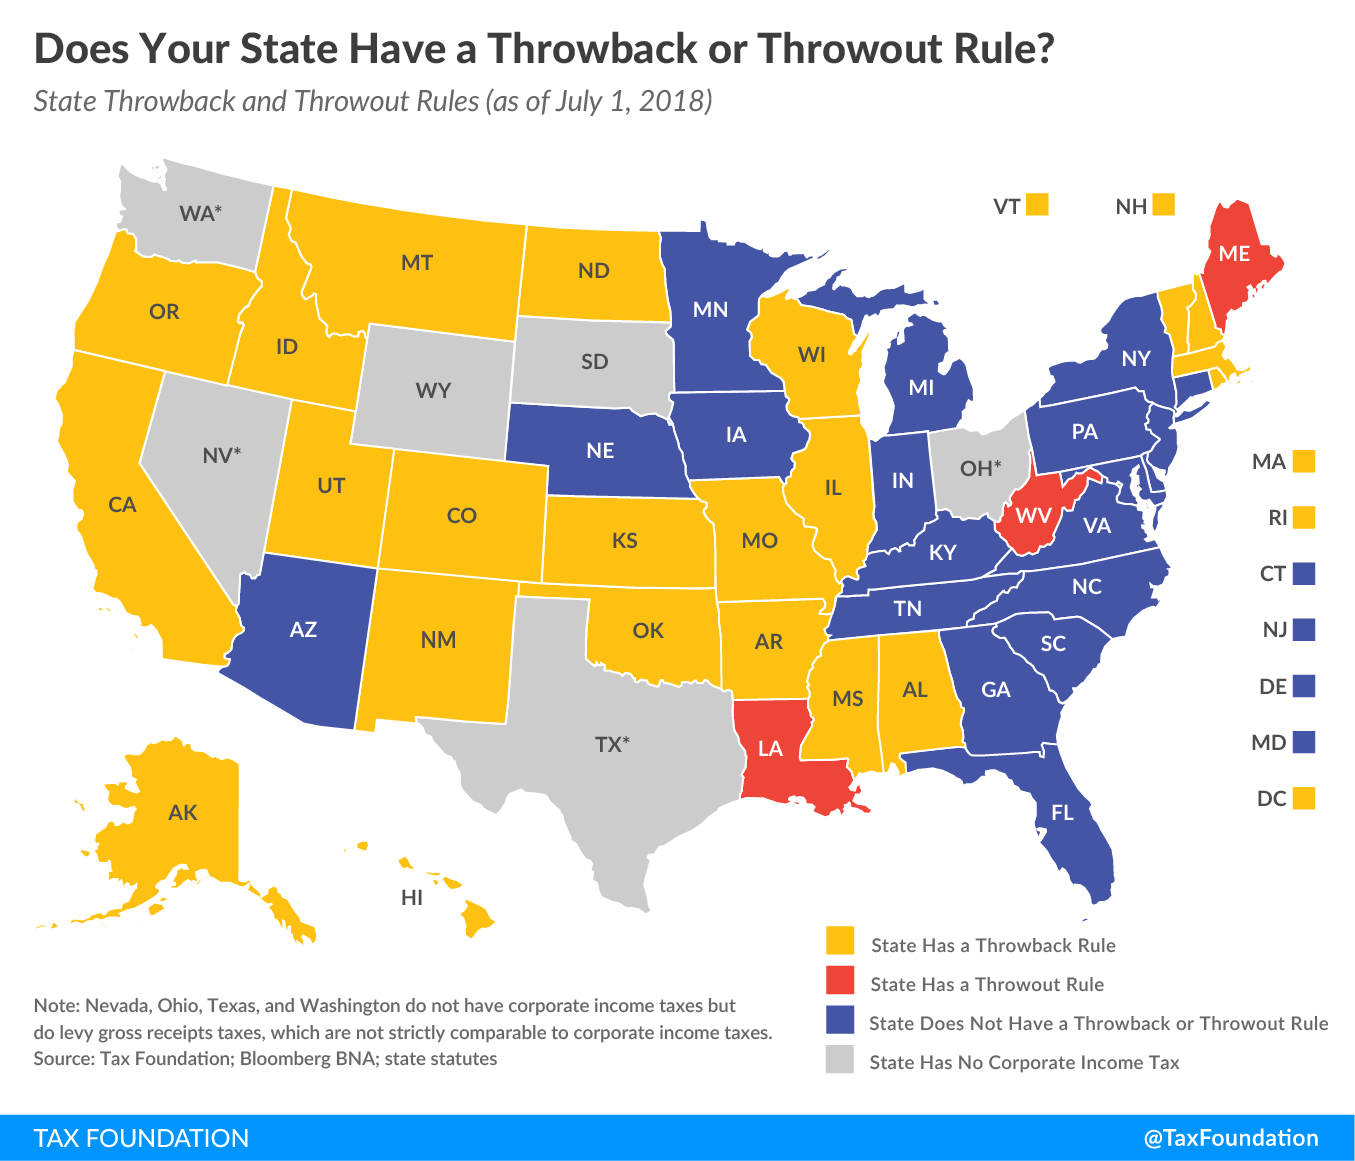 Does Your State Have a Throwback or Throwout Rule?